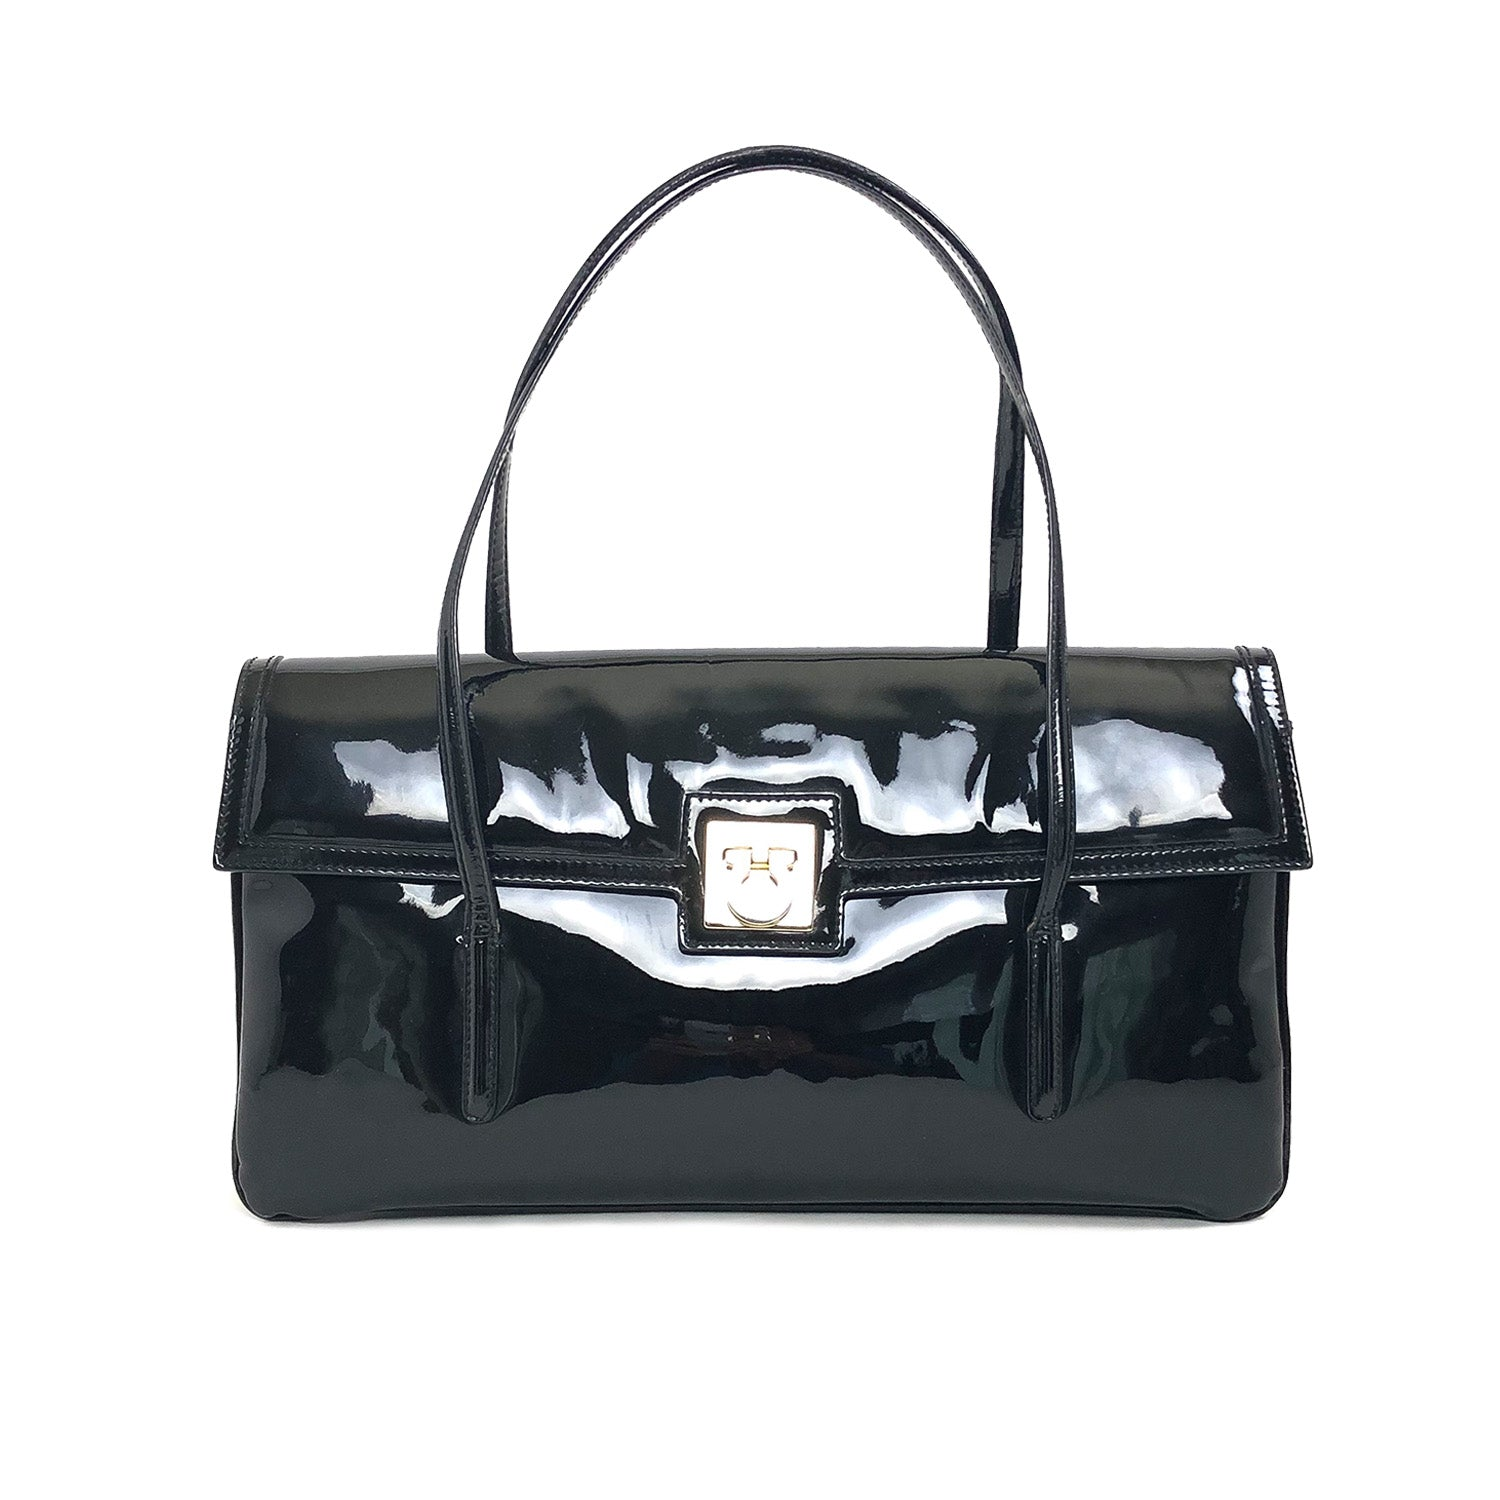 ladiesoflux - Salvatore Ferragamo Patent Shoulder Bag - Ladies Of Lux - Handbag